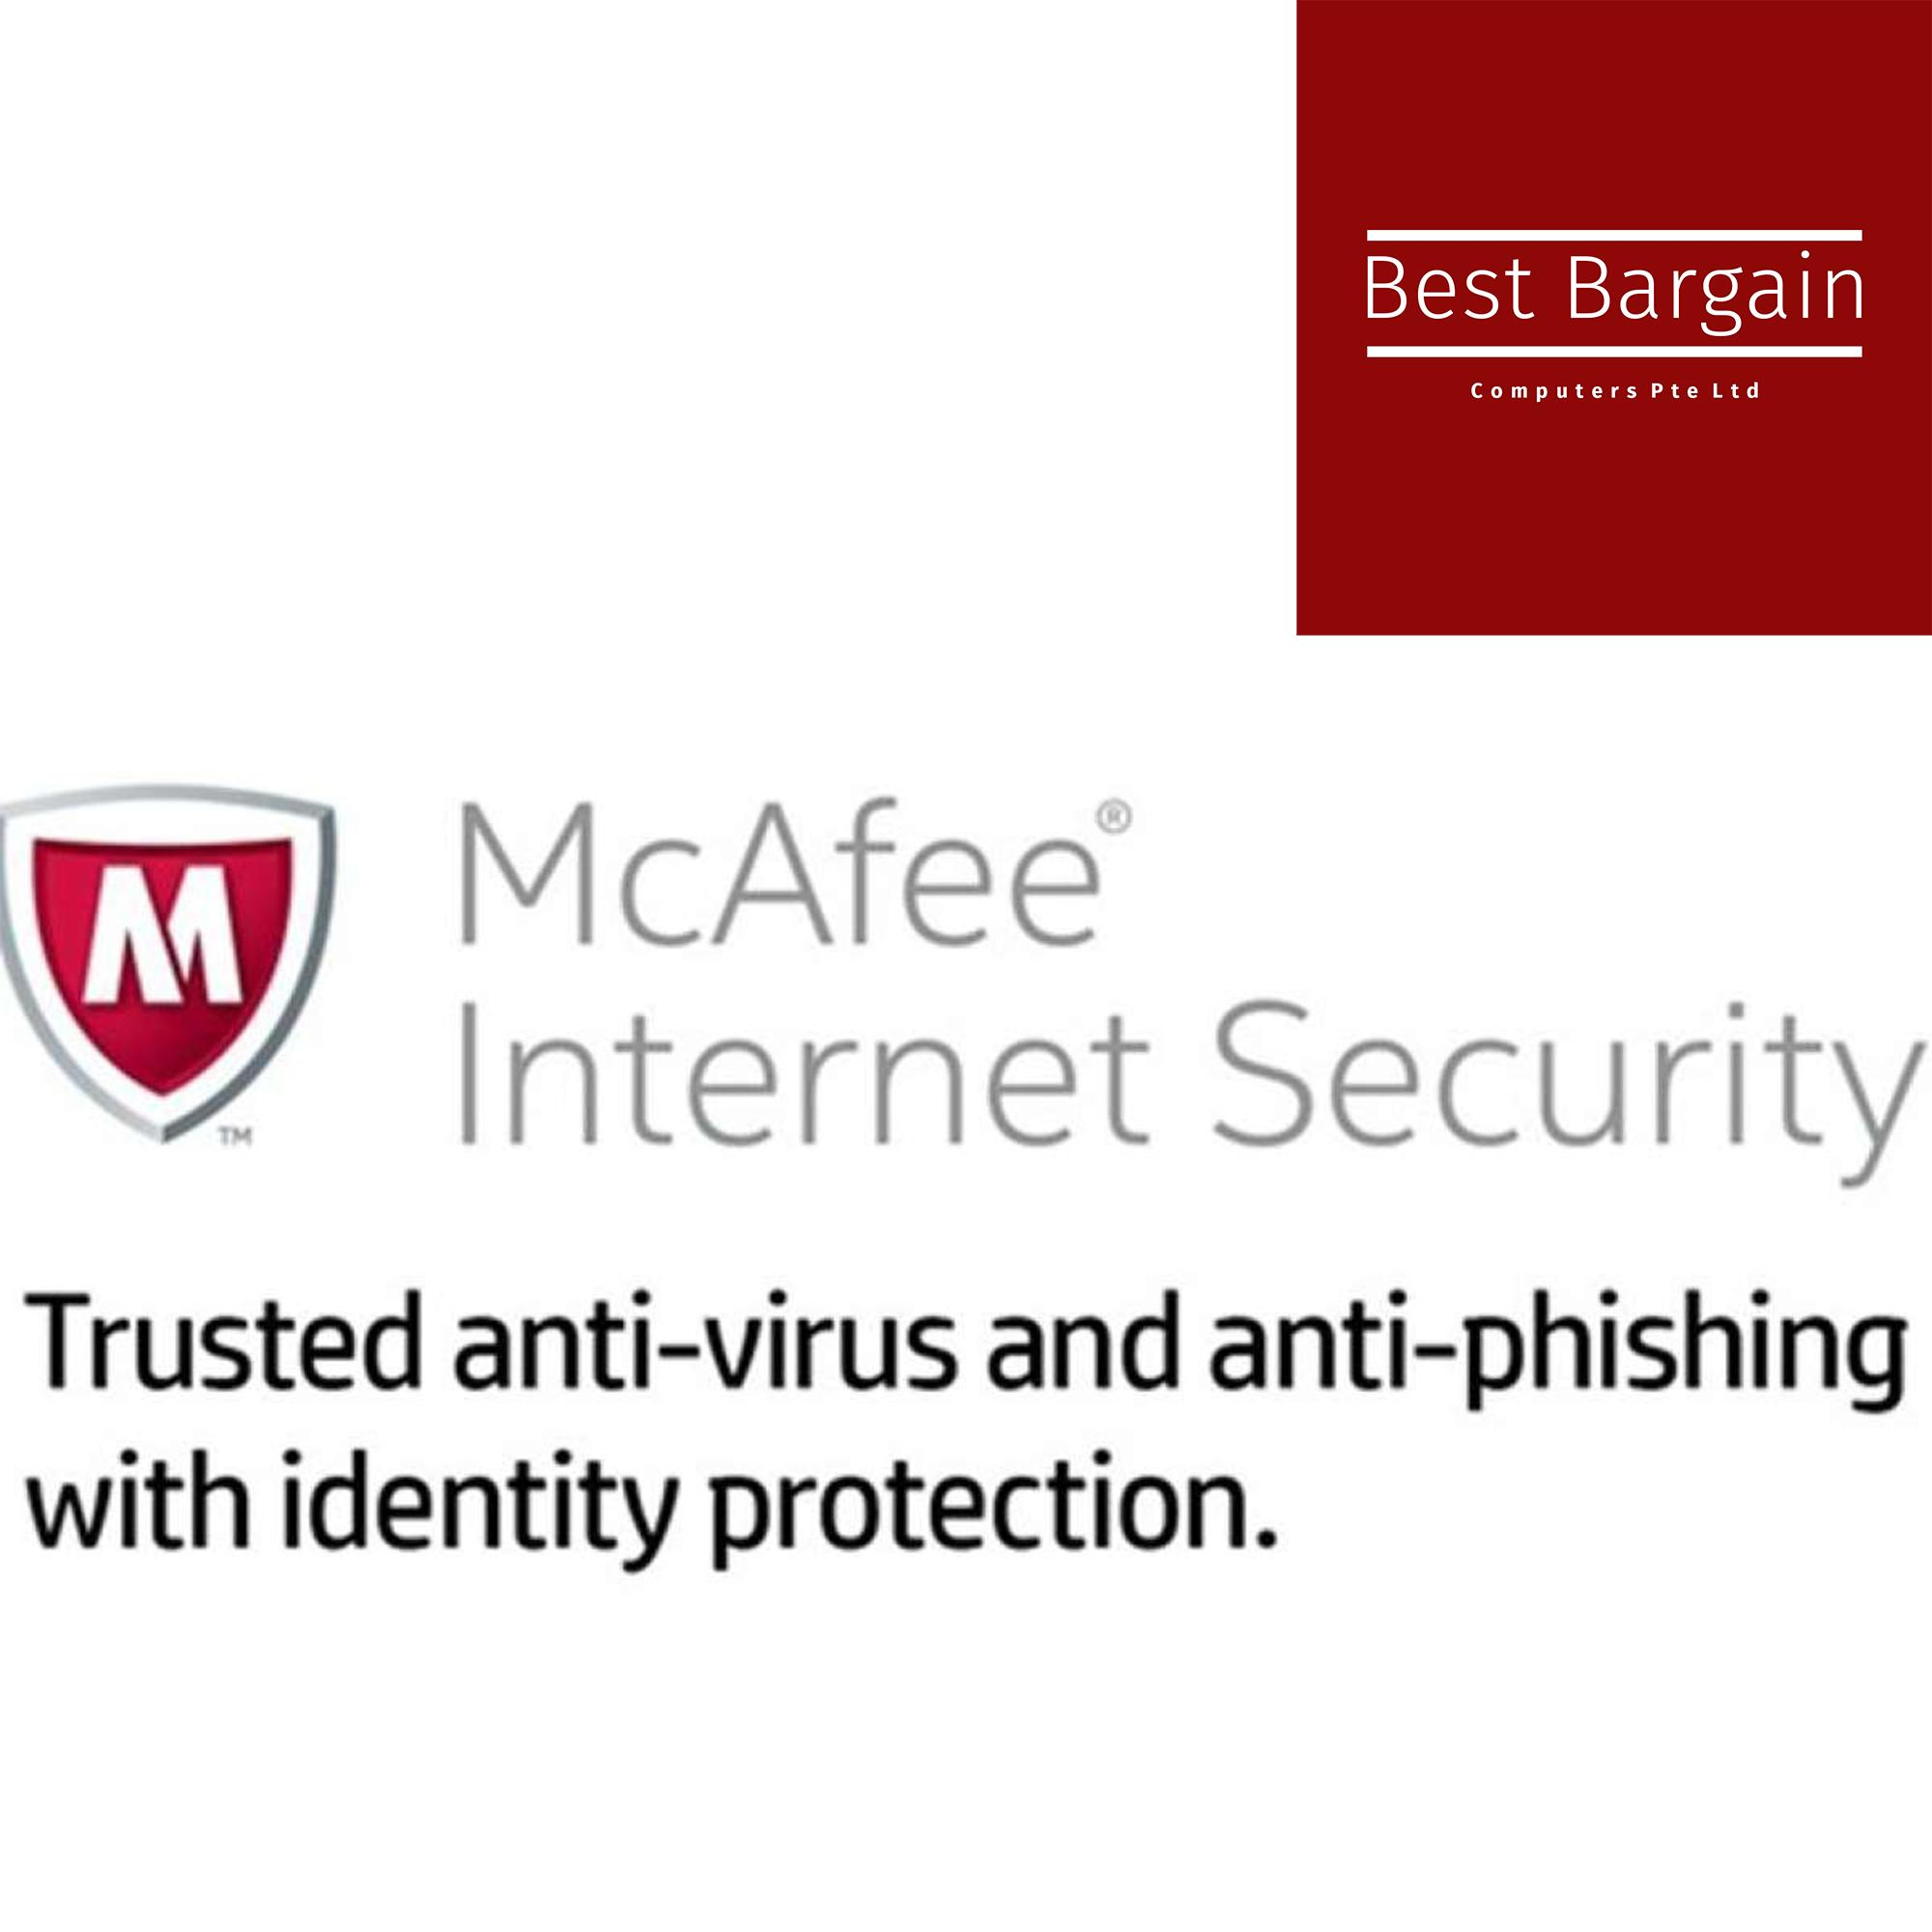 mcafee antivirus free download with licence key